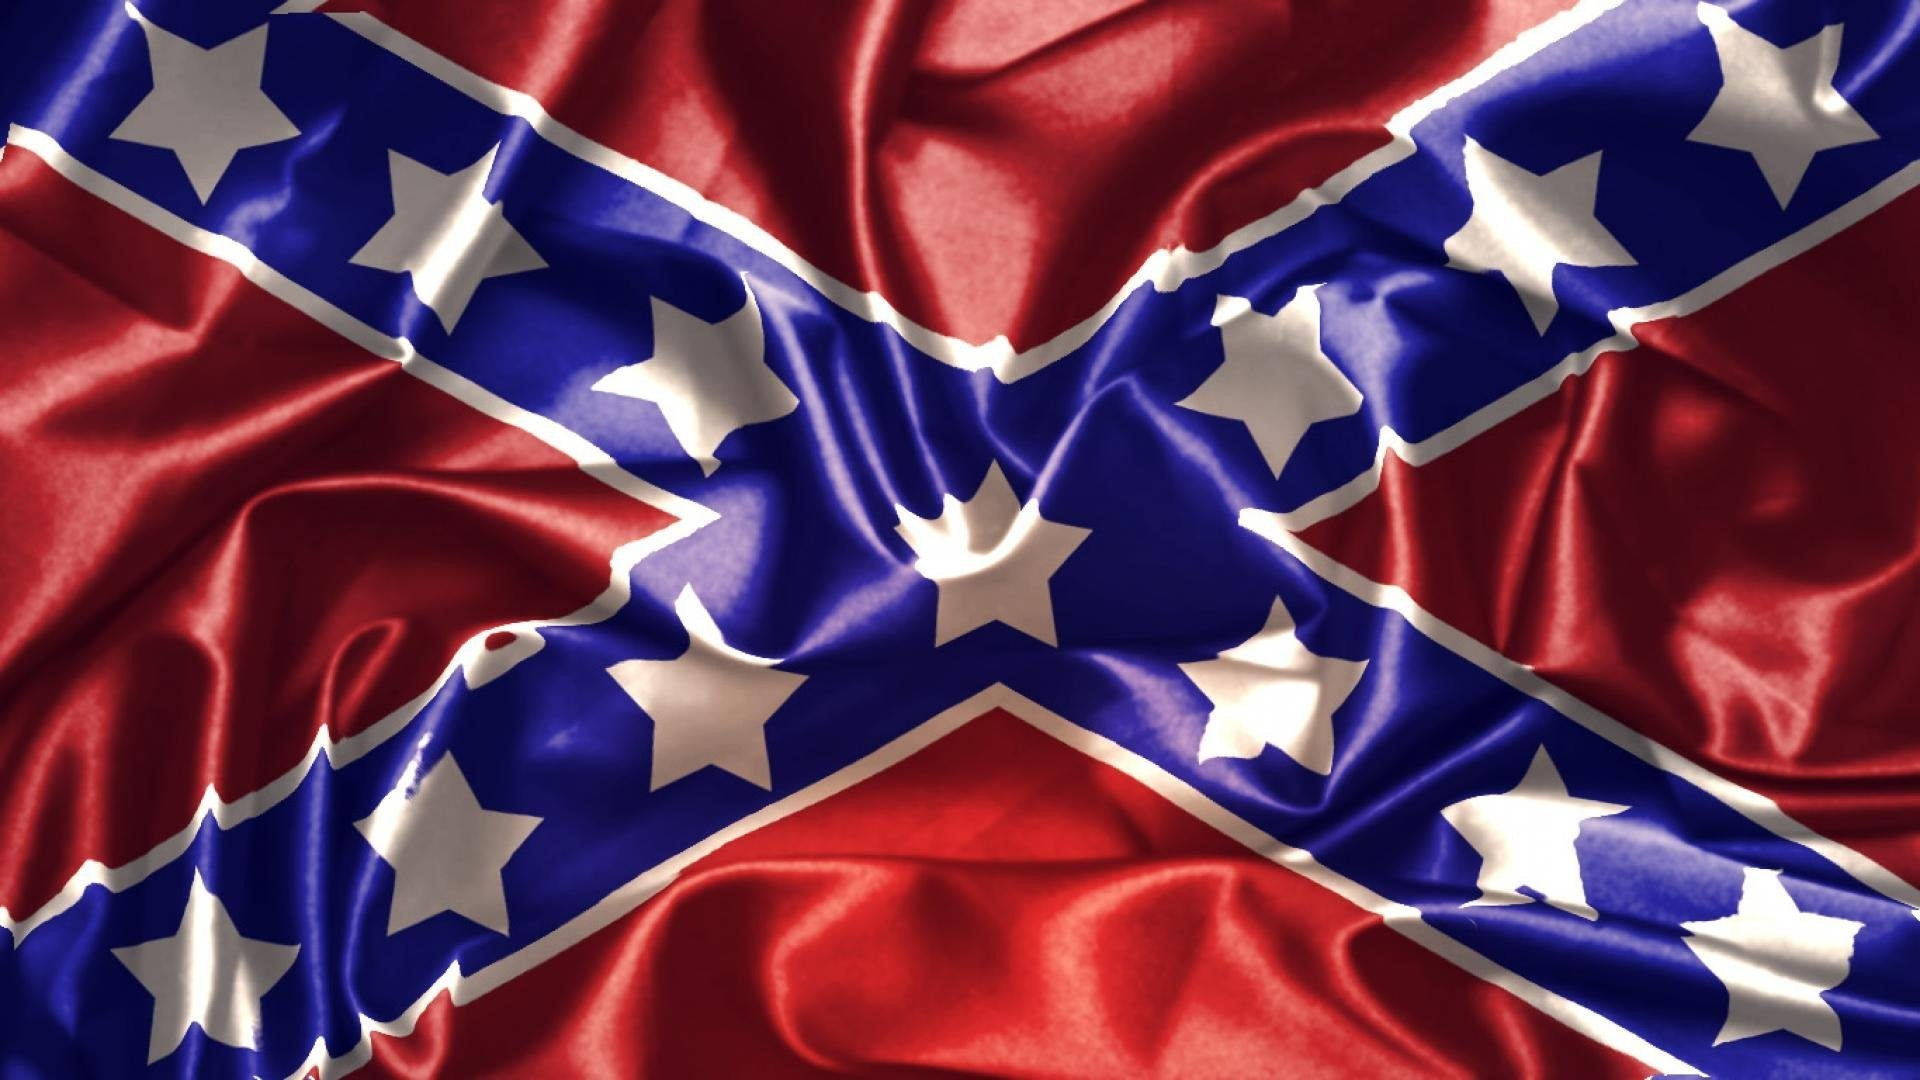 Free rebel flag wallpaper for phone Other Cell Phone Items